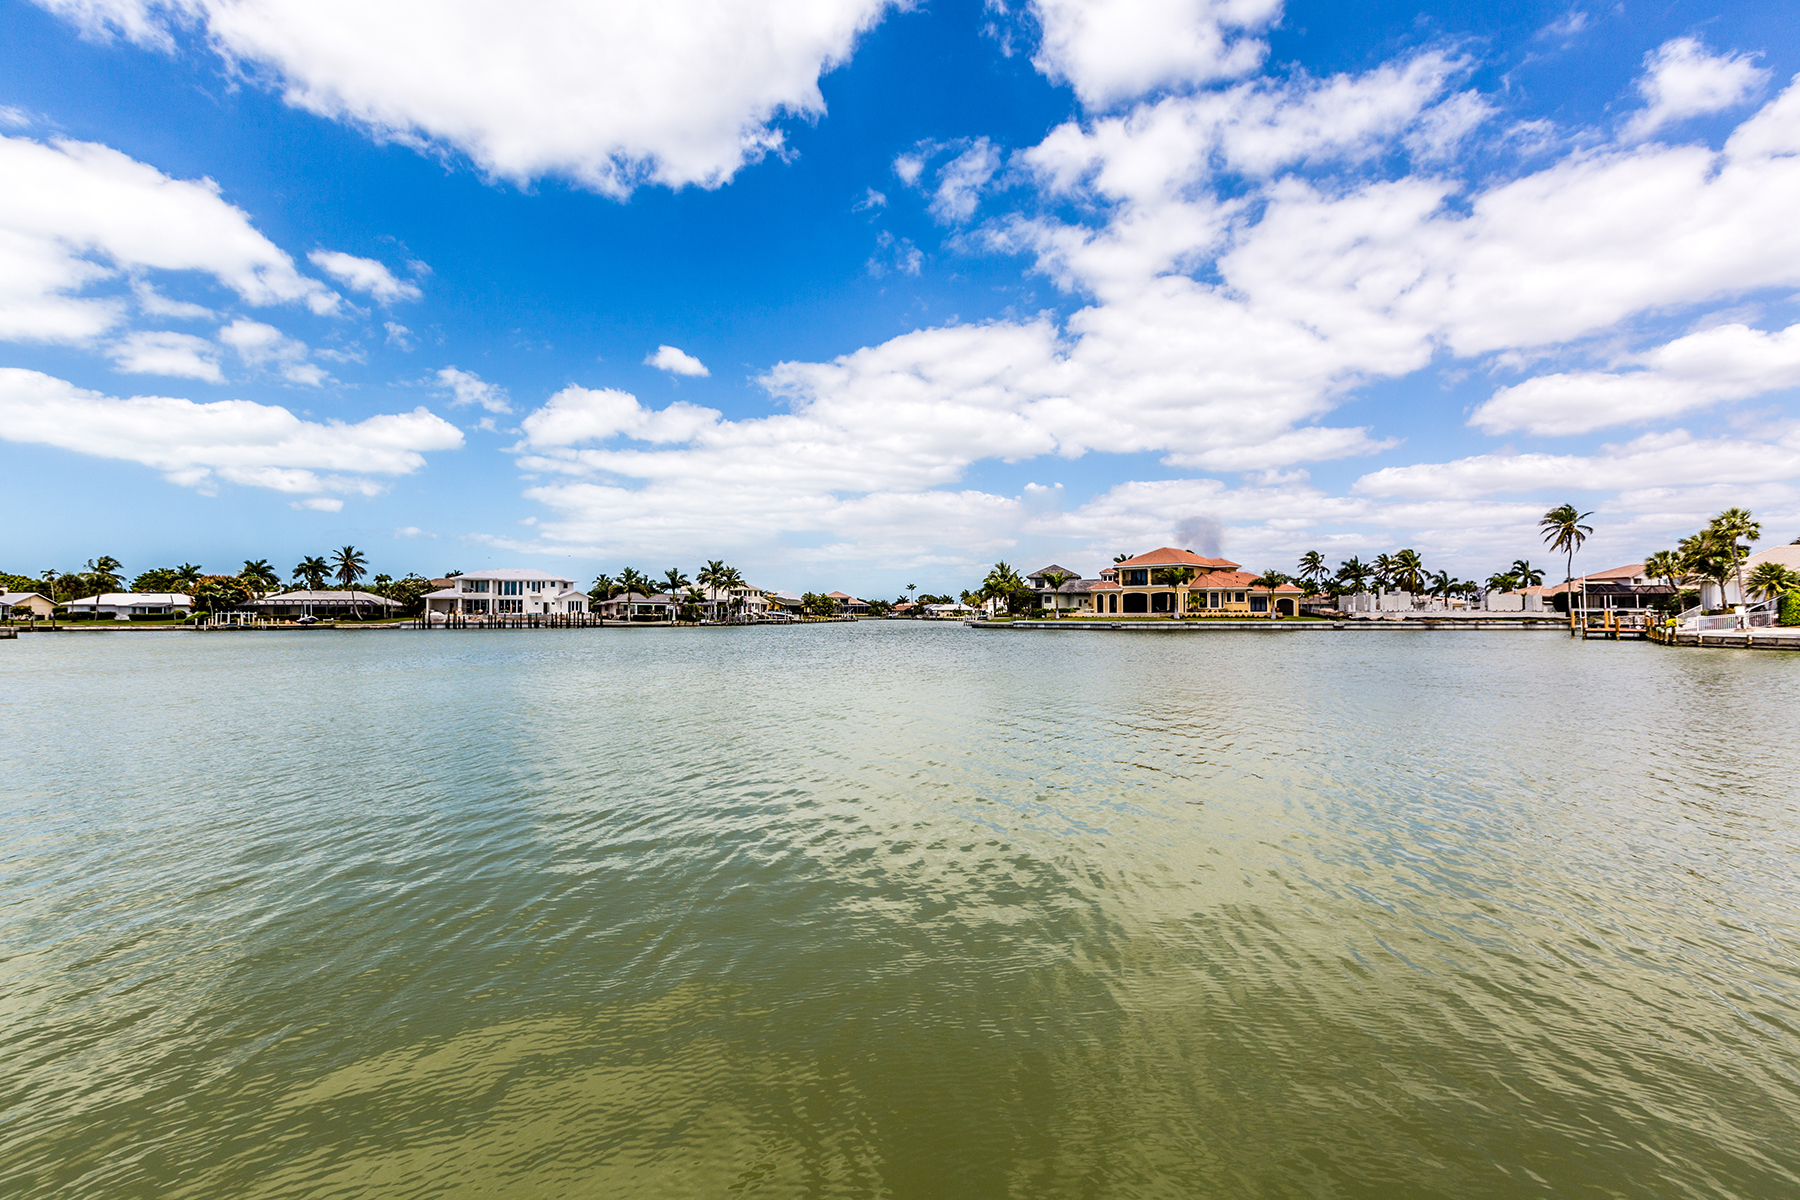 Land for Sale at MARCO ISLAND 490 Tarpon Ct, Marco Island, Florida 34145 United States